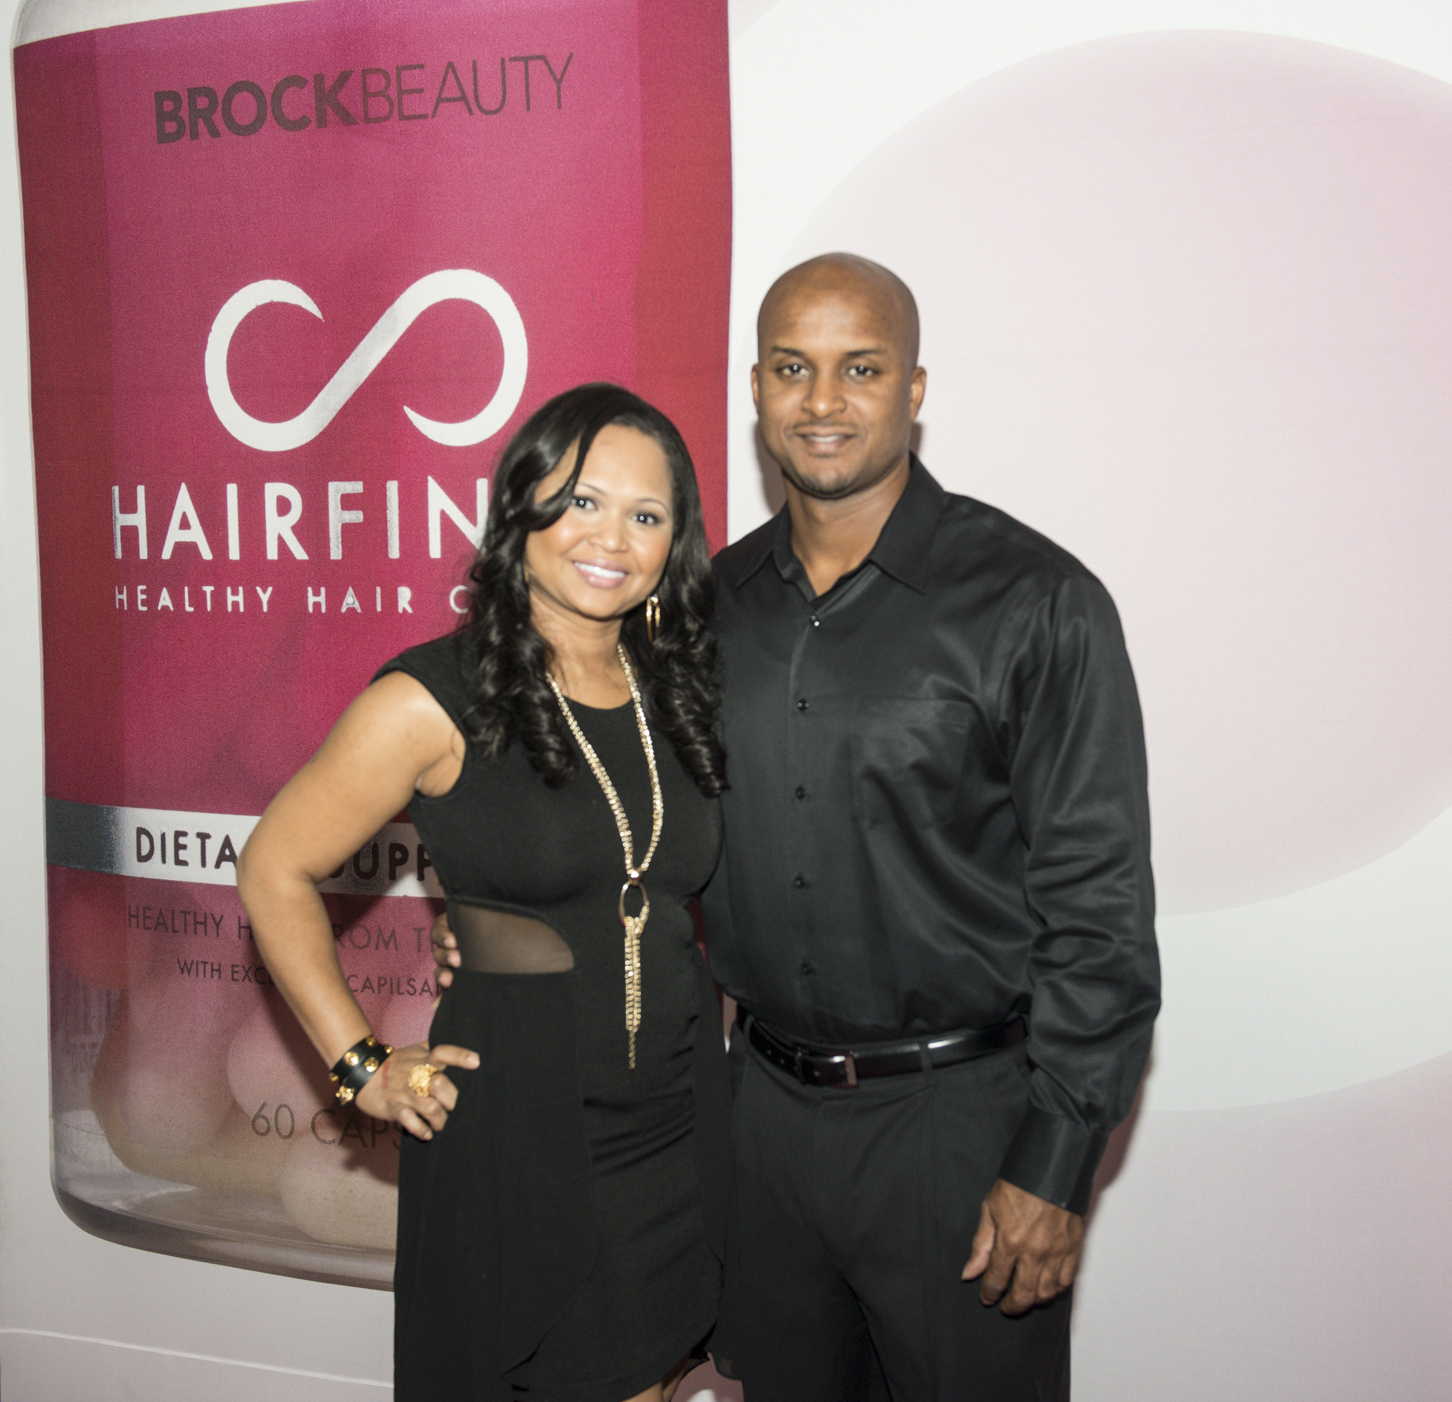 New Yorks Hair Naturalistas Pack Hairfinitys Let Your